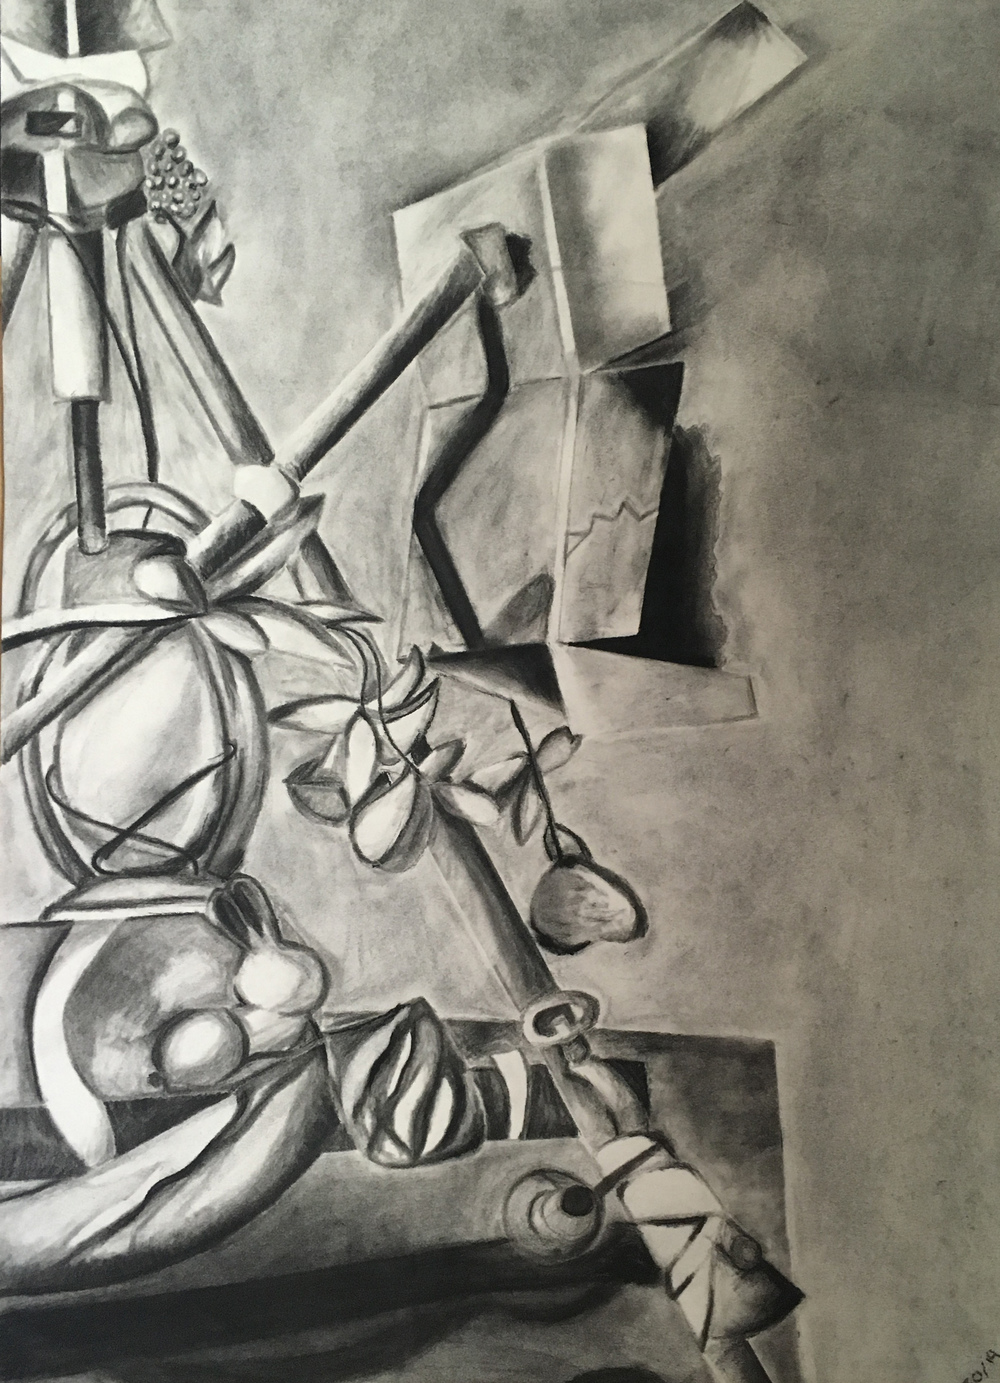 Still Life, Charcoal, 17in x 11in